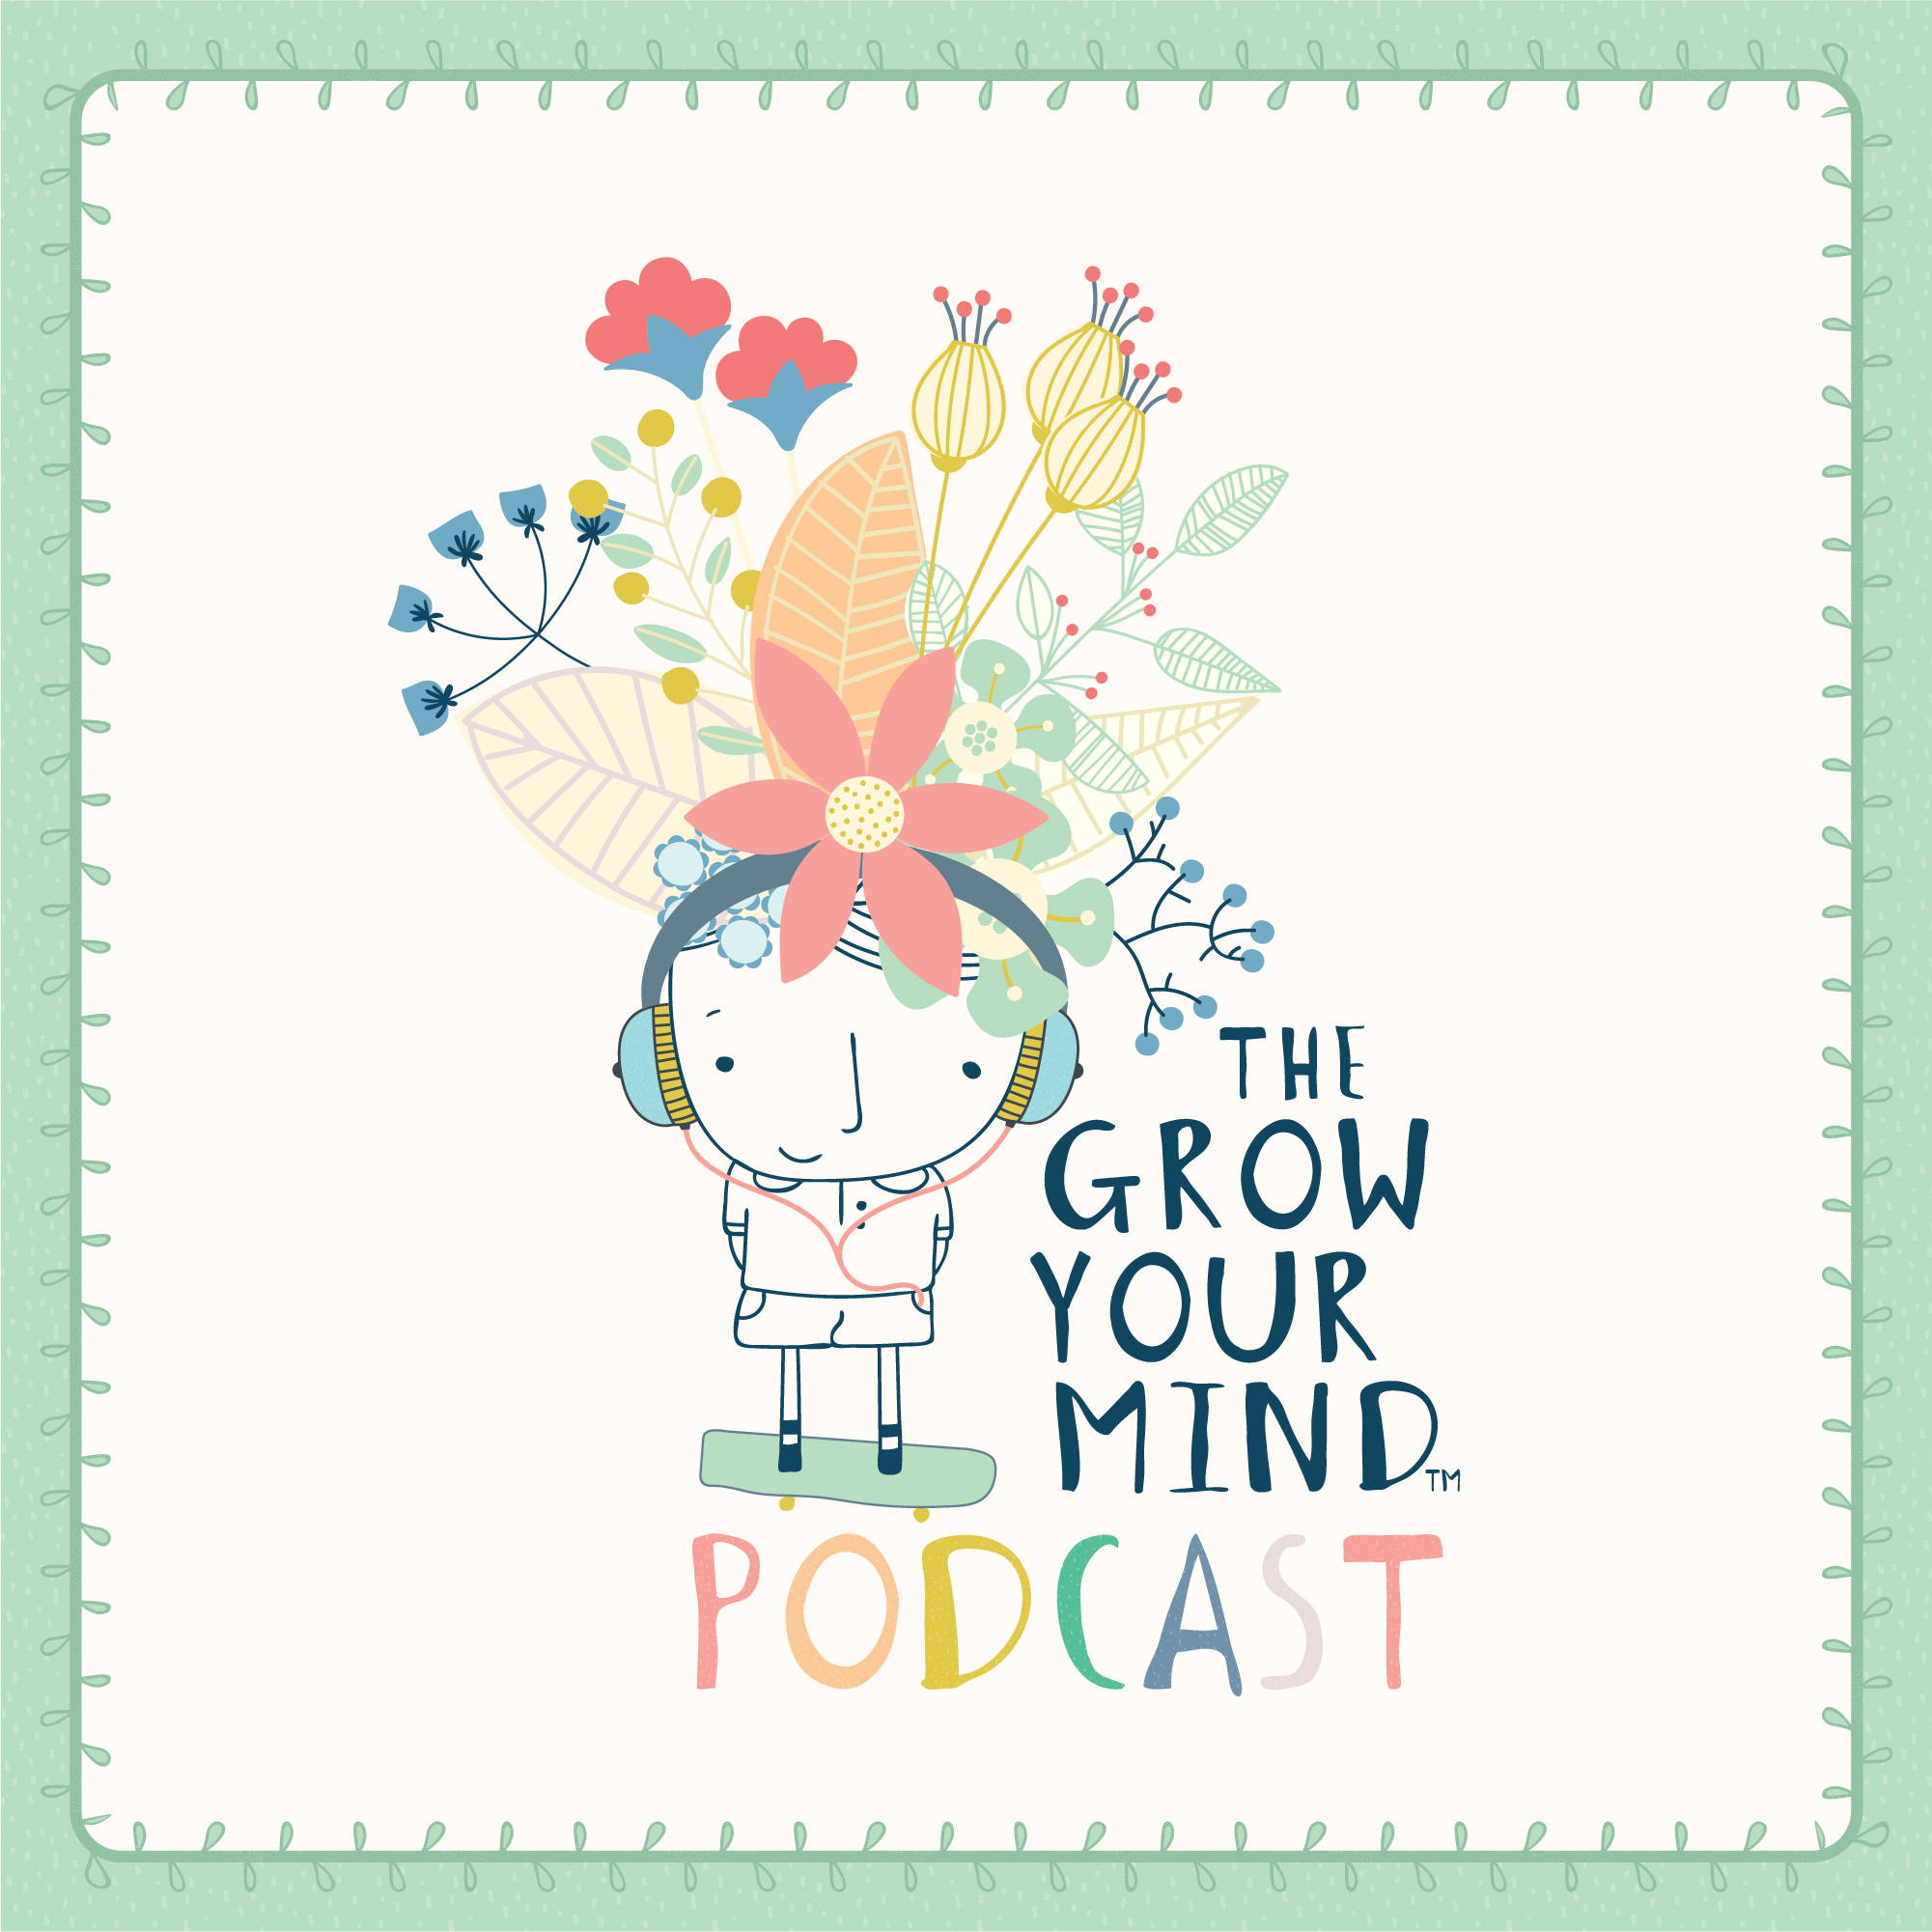 the grow your mind podcast logo